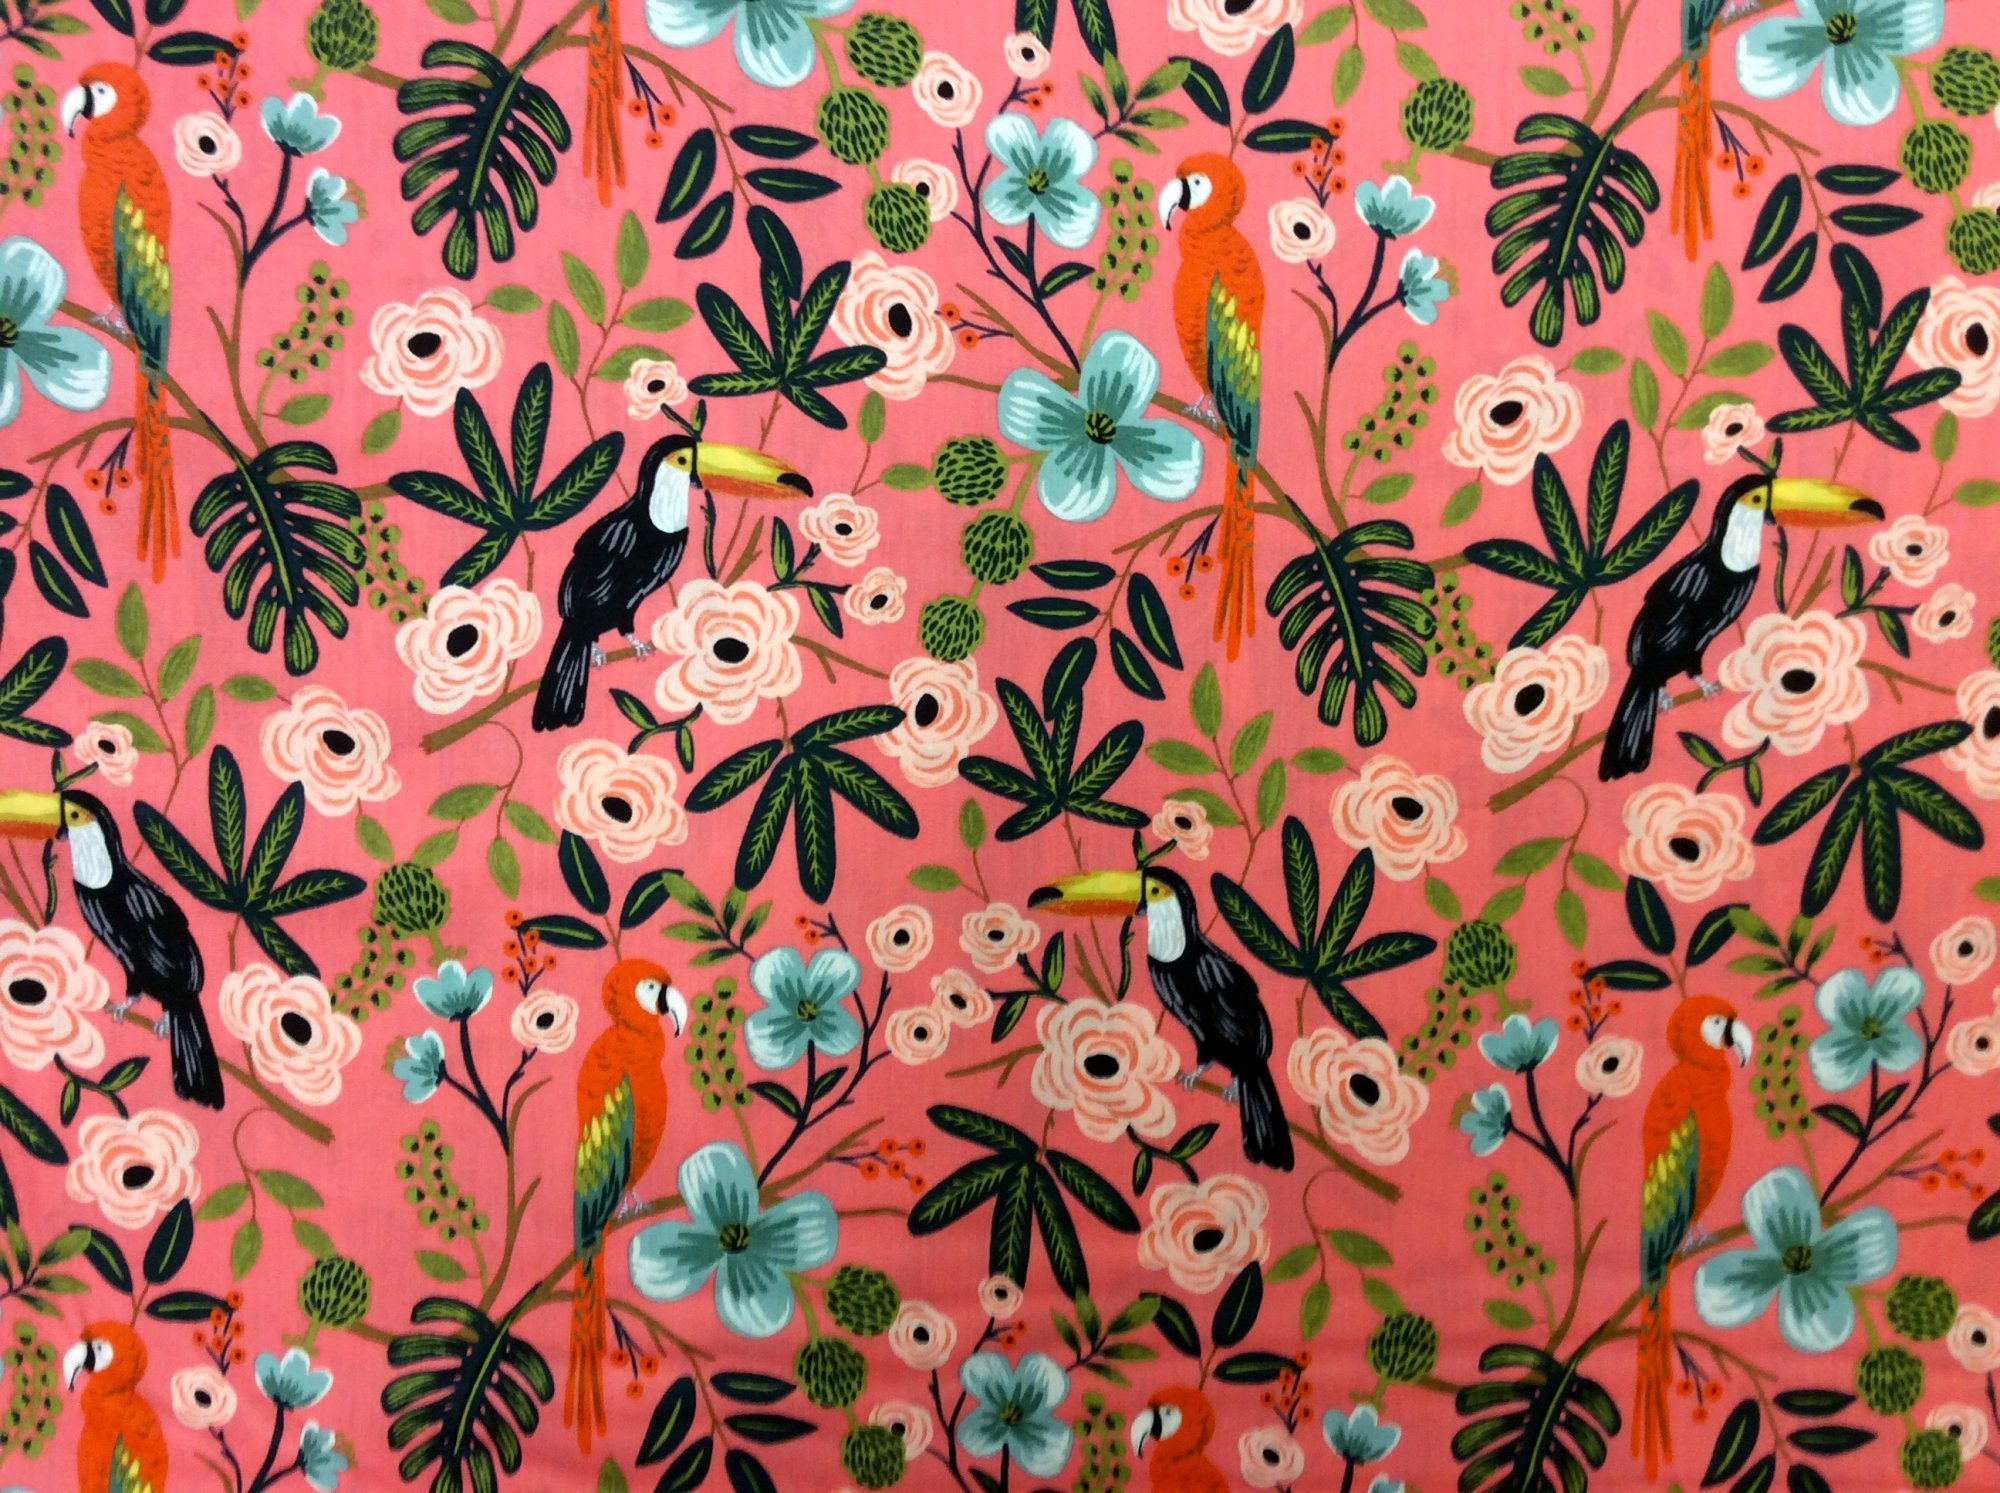 Cotton + Steel Rifle Paper Company Menagerie Paradise Garden Coral Cotton Rayon Lawn Fabric CTN88